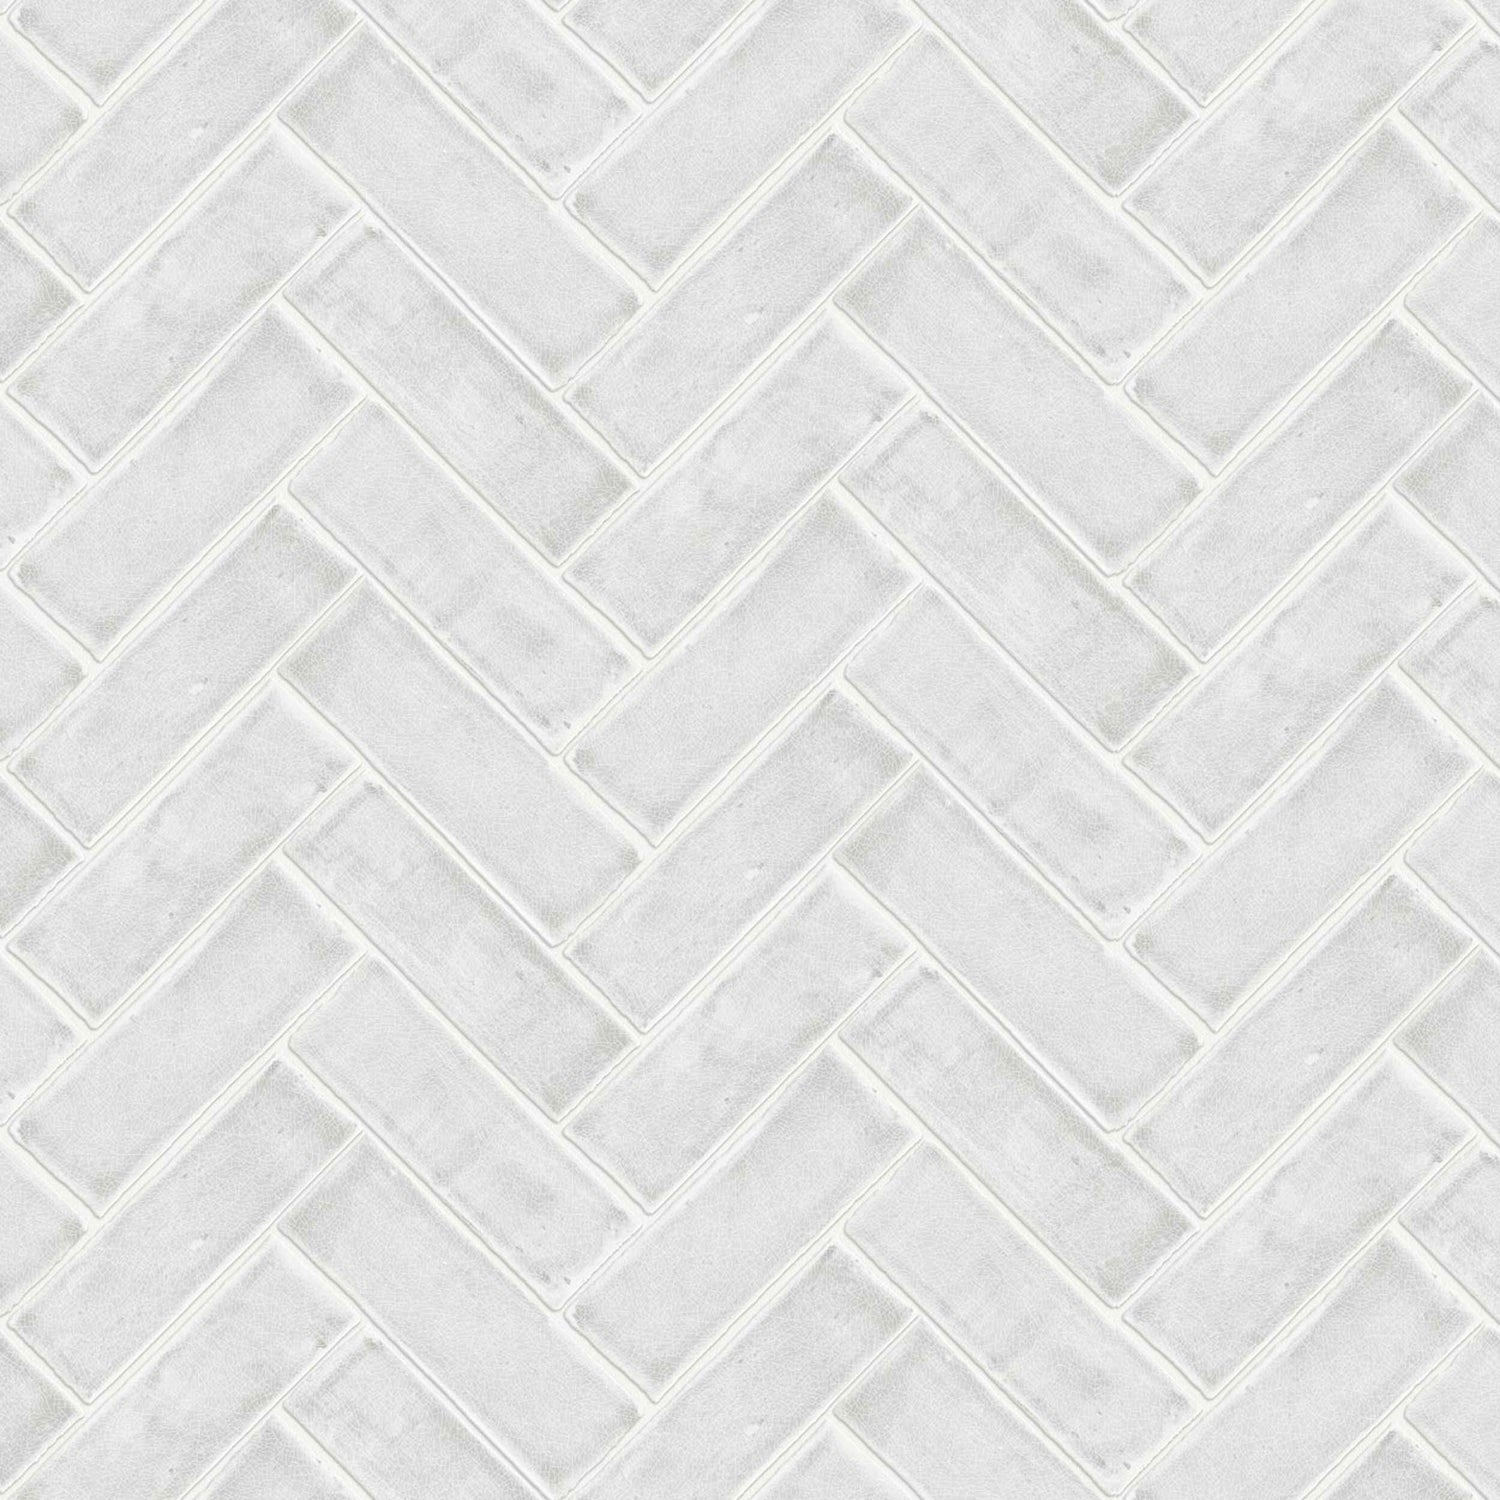 Chevron in White by Argent & Ink